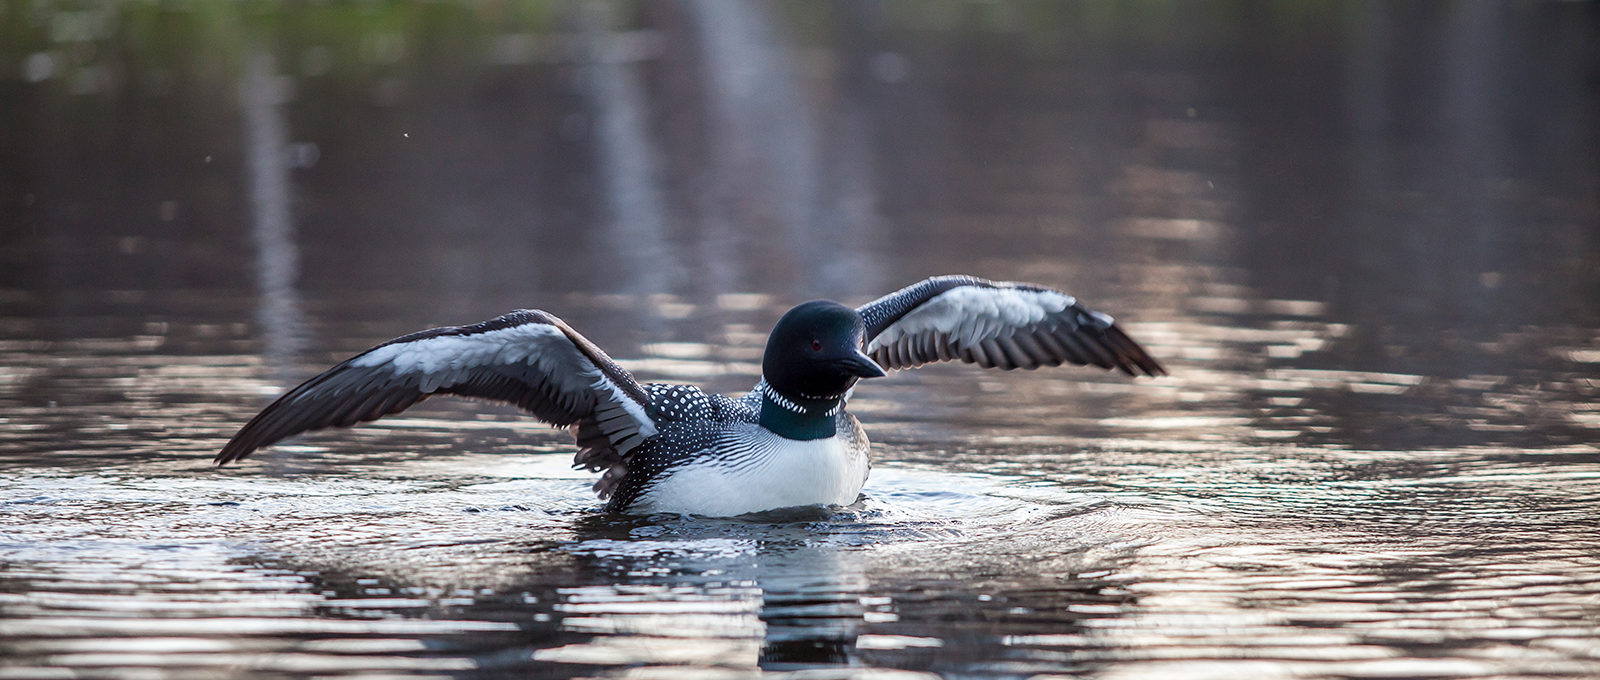 Loon airs its wings